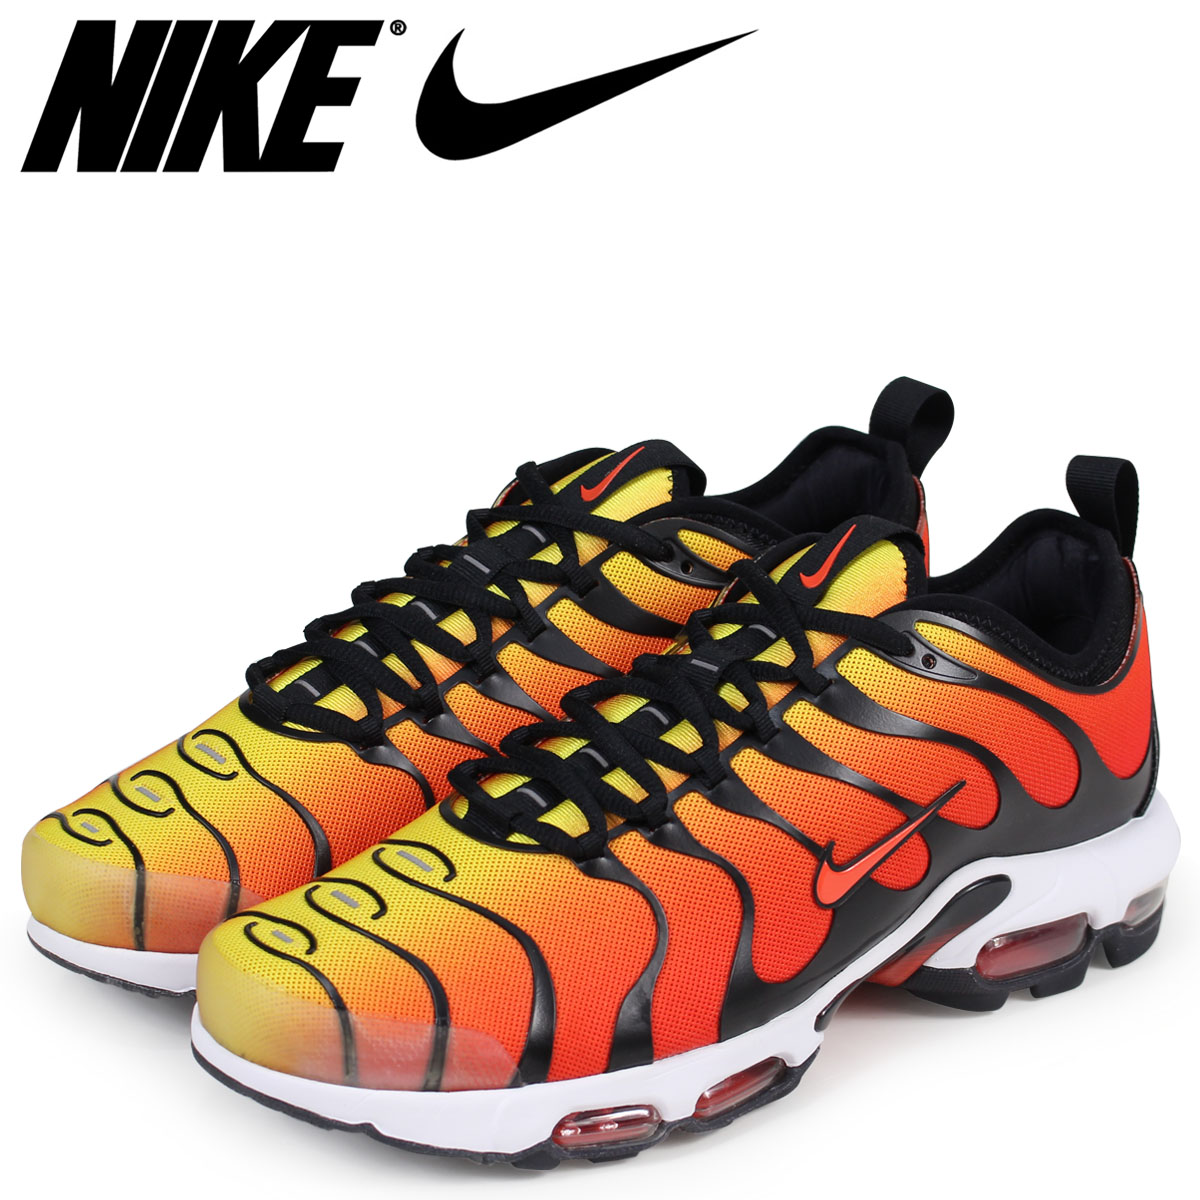 the latest a30ce 4ce90 NIKE Kie Ney AMAX plus sneakers men AIR MAX PLUS TN ULTRA 898,015-004 orange